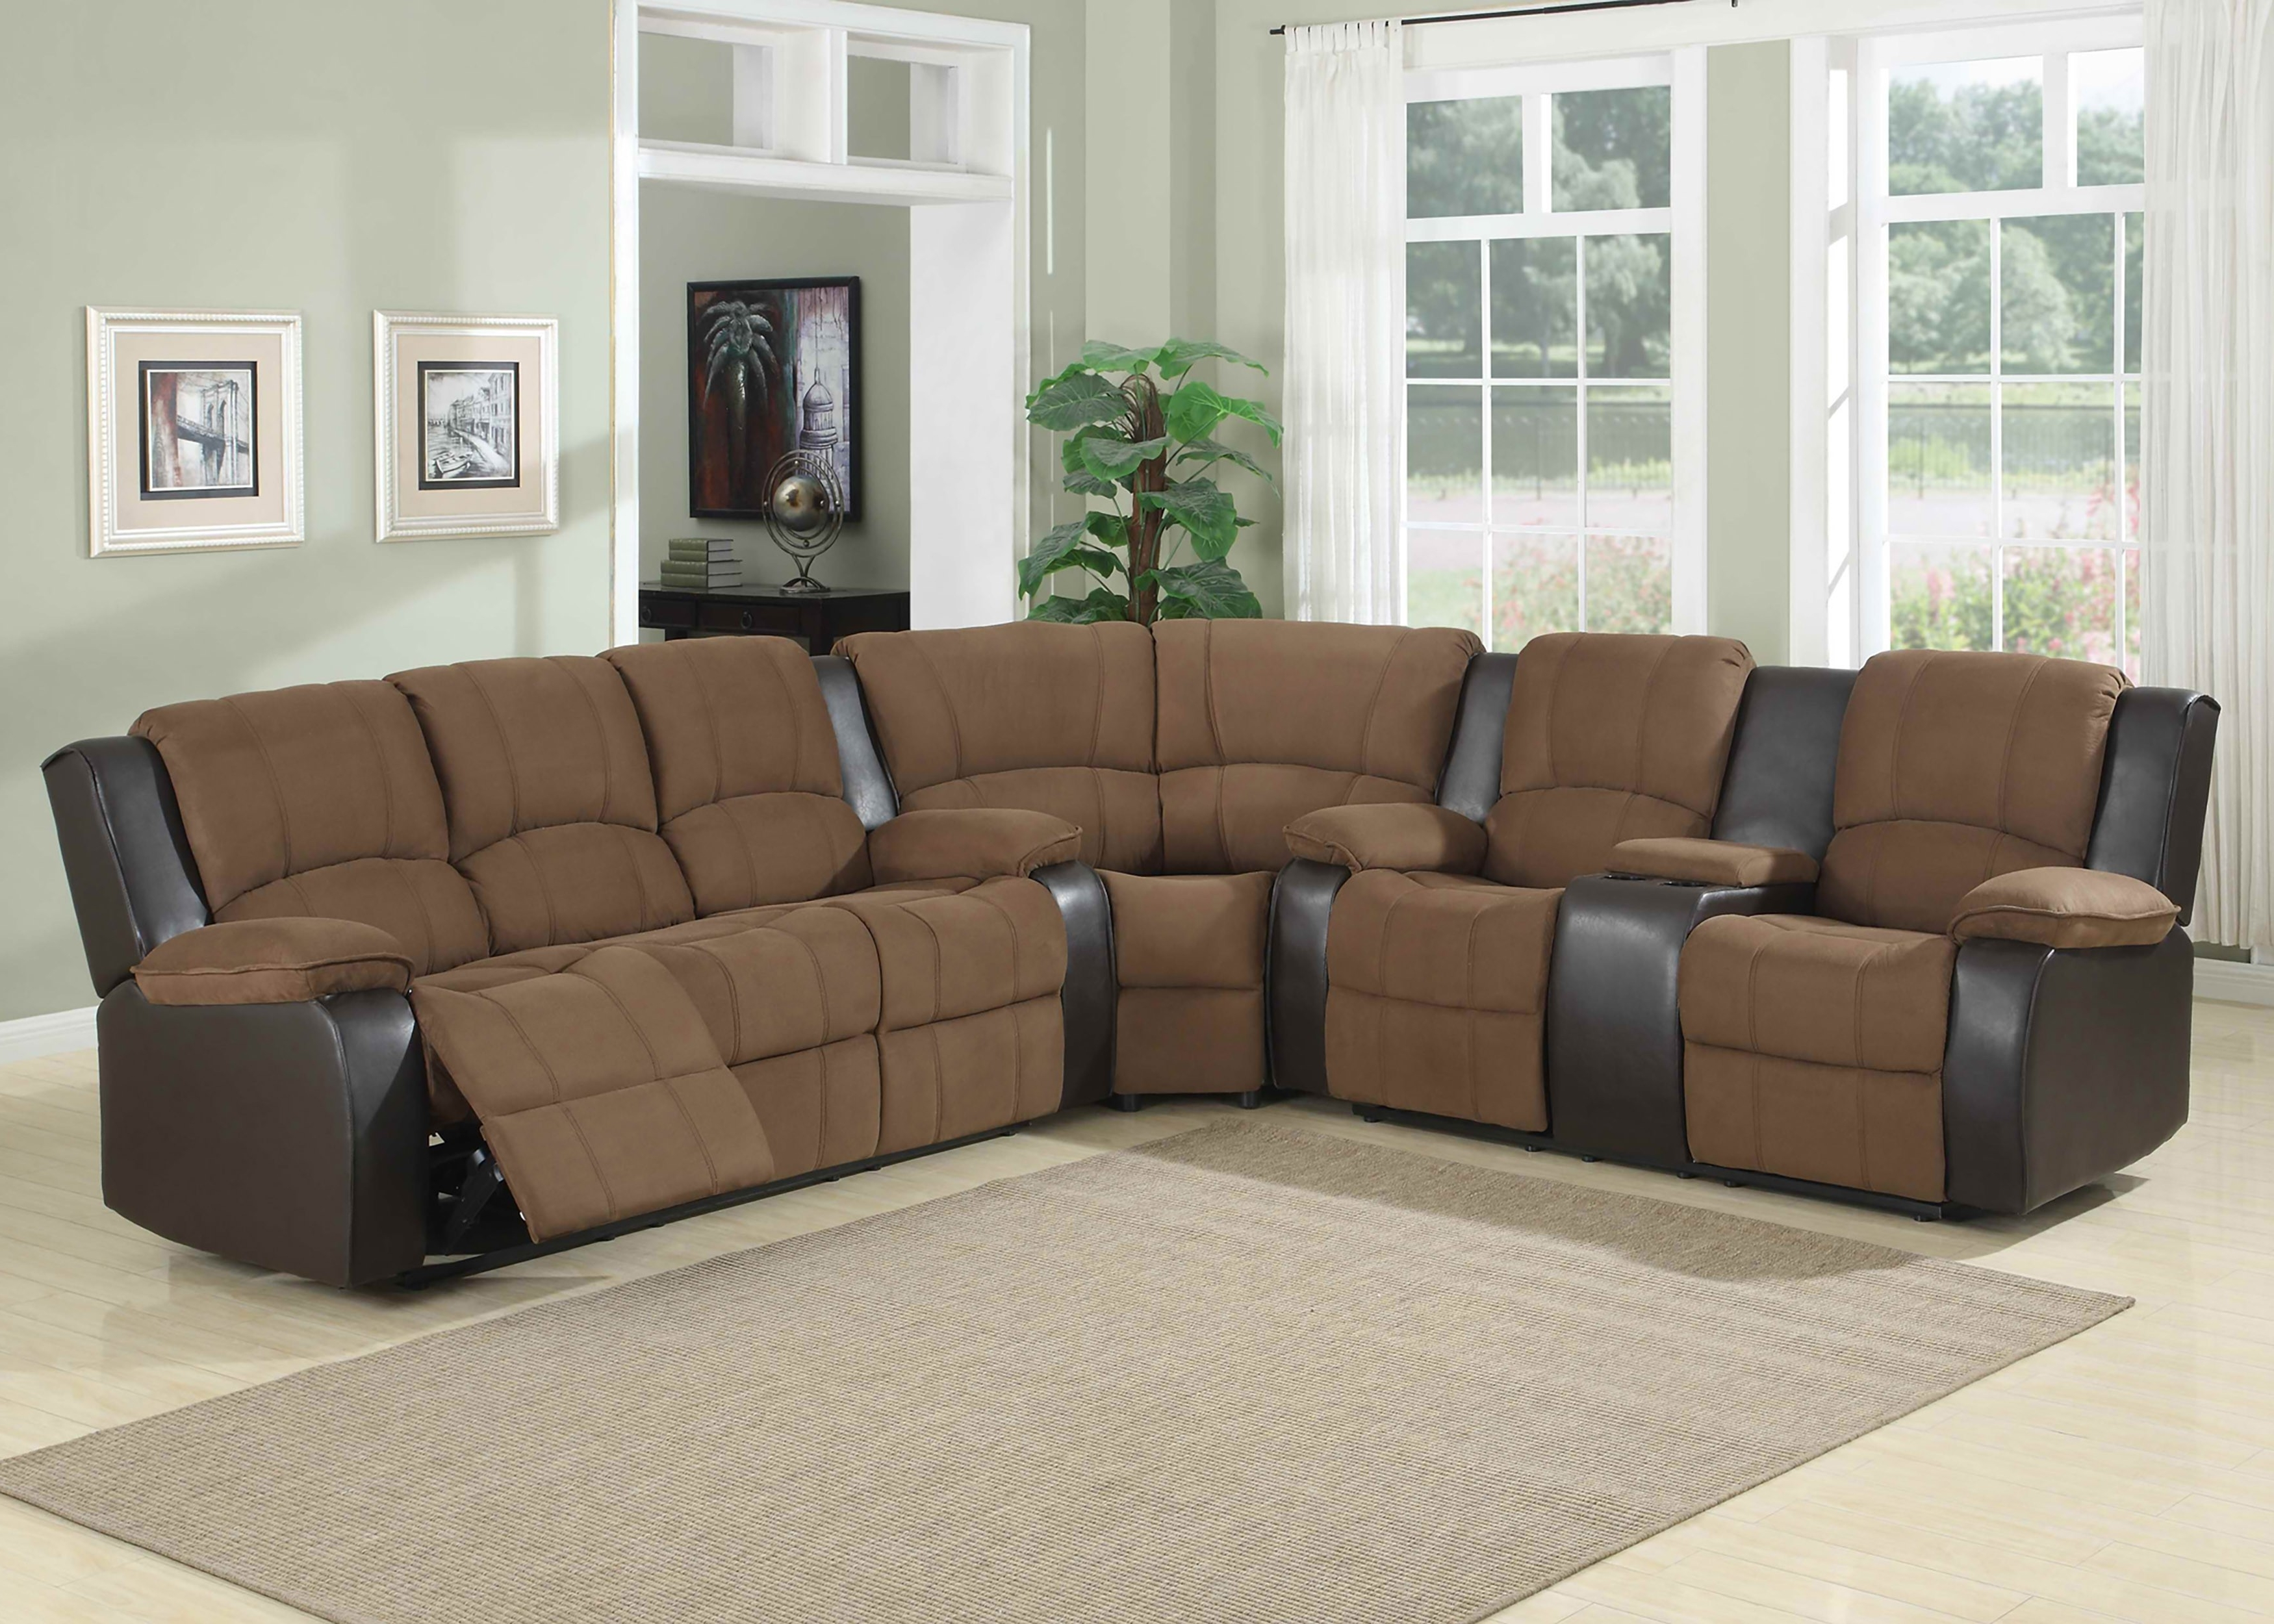 2018 Vaughan Sectional Sofas Within Sofa Cheap Sectional Sofas Fabric Sectional Vaughn Apartment Beautiful Vaughn Sectional Sofa 5pc Dimensions Of Vaughn Sectional Sofa 5pc Dimensions (View 13 of 20)